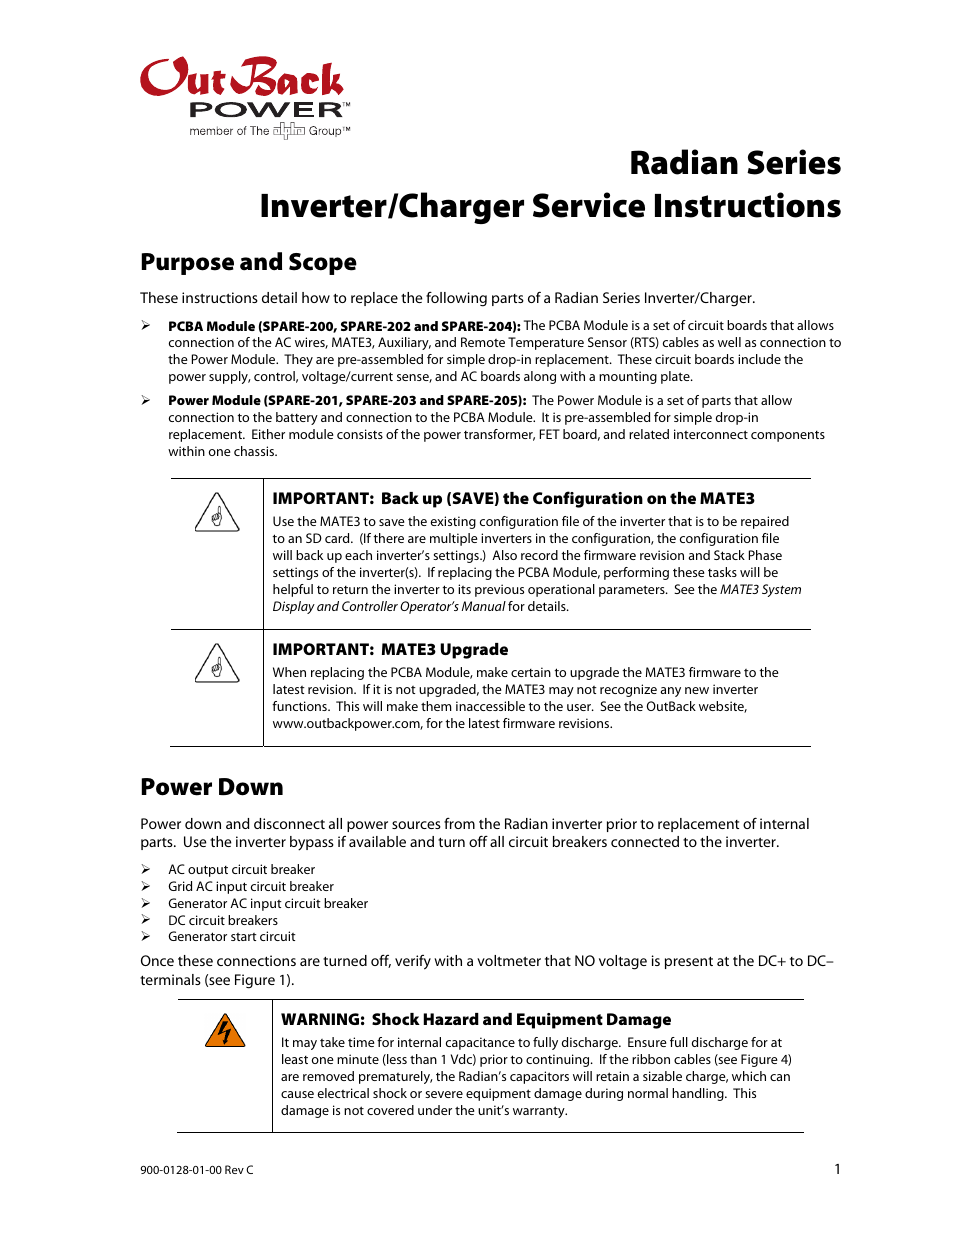 Outback Power Systems Radian Series Inverter Charger Service Generator Voltmeter Ac Wiring Circuits Instructions User Manual 8 Pages